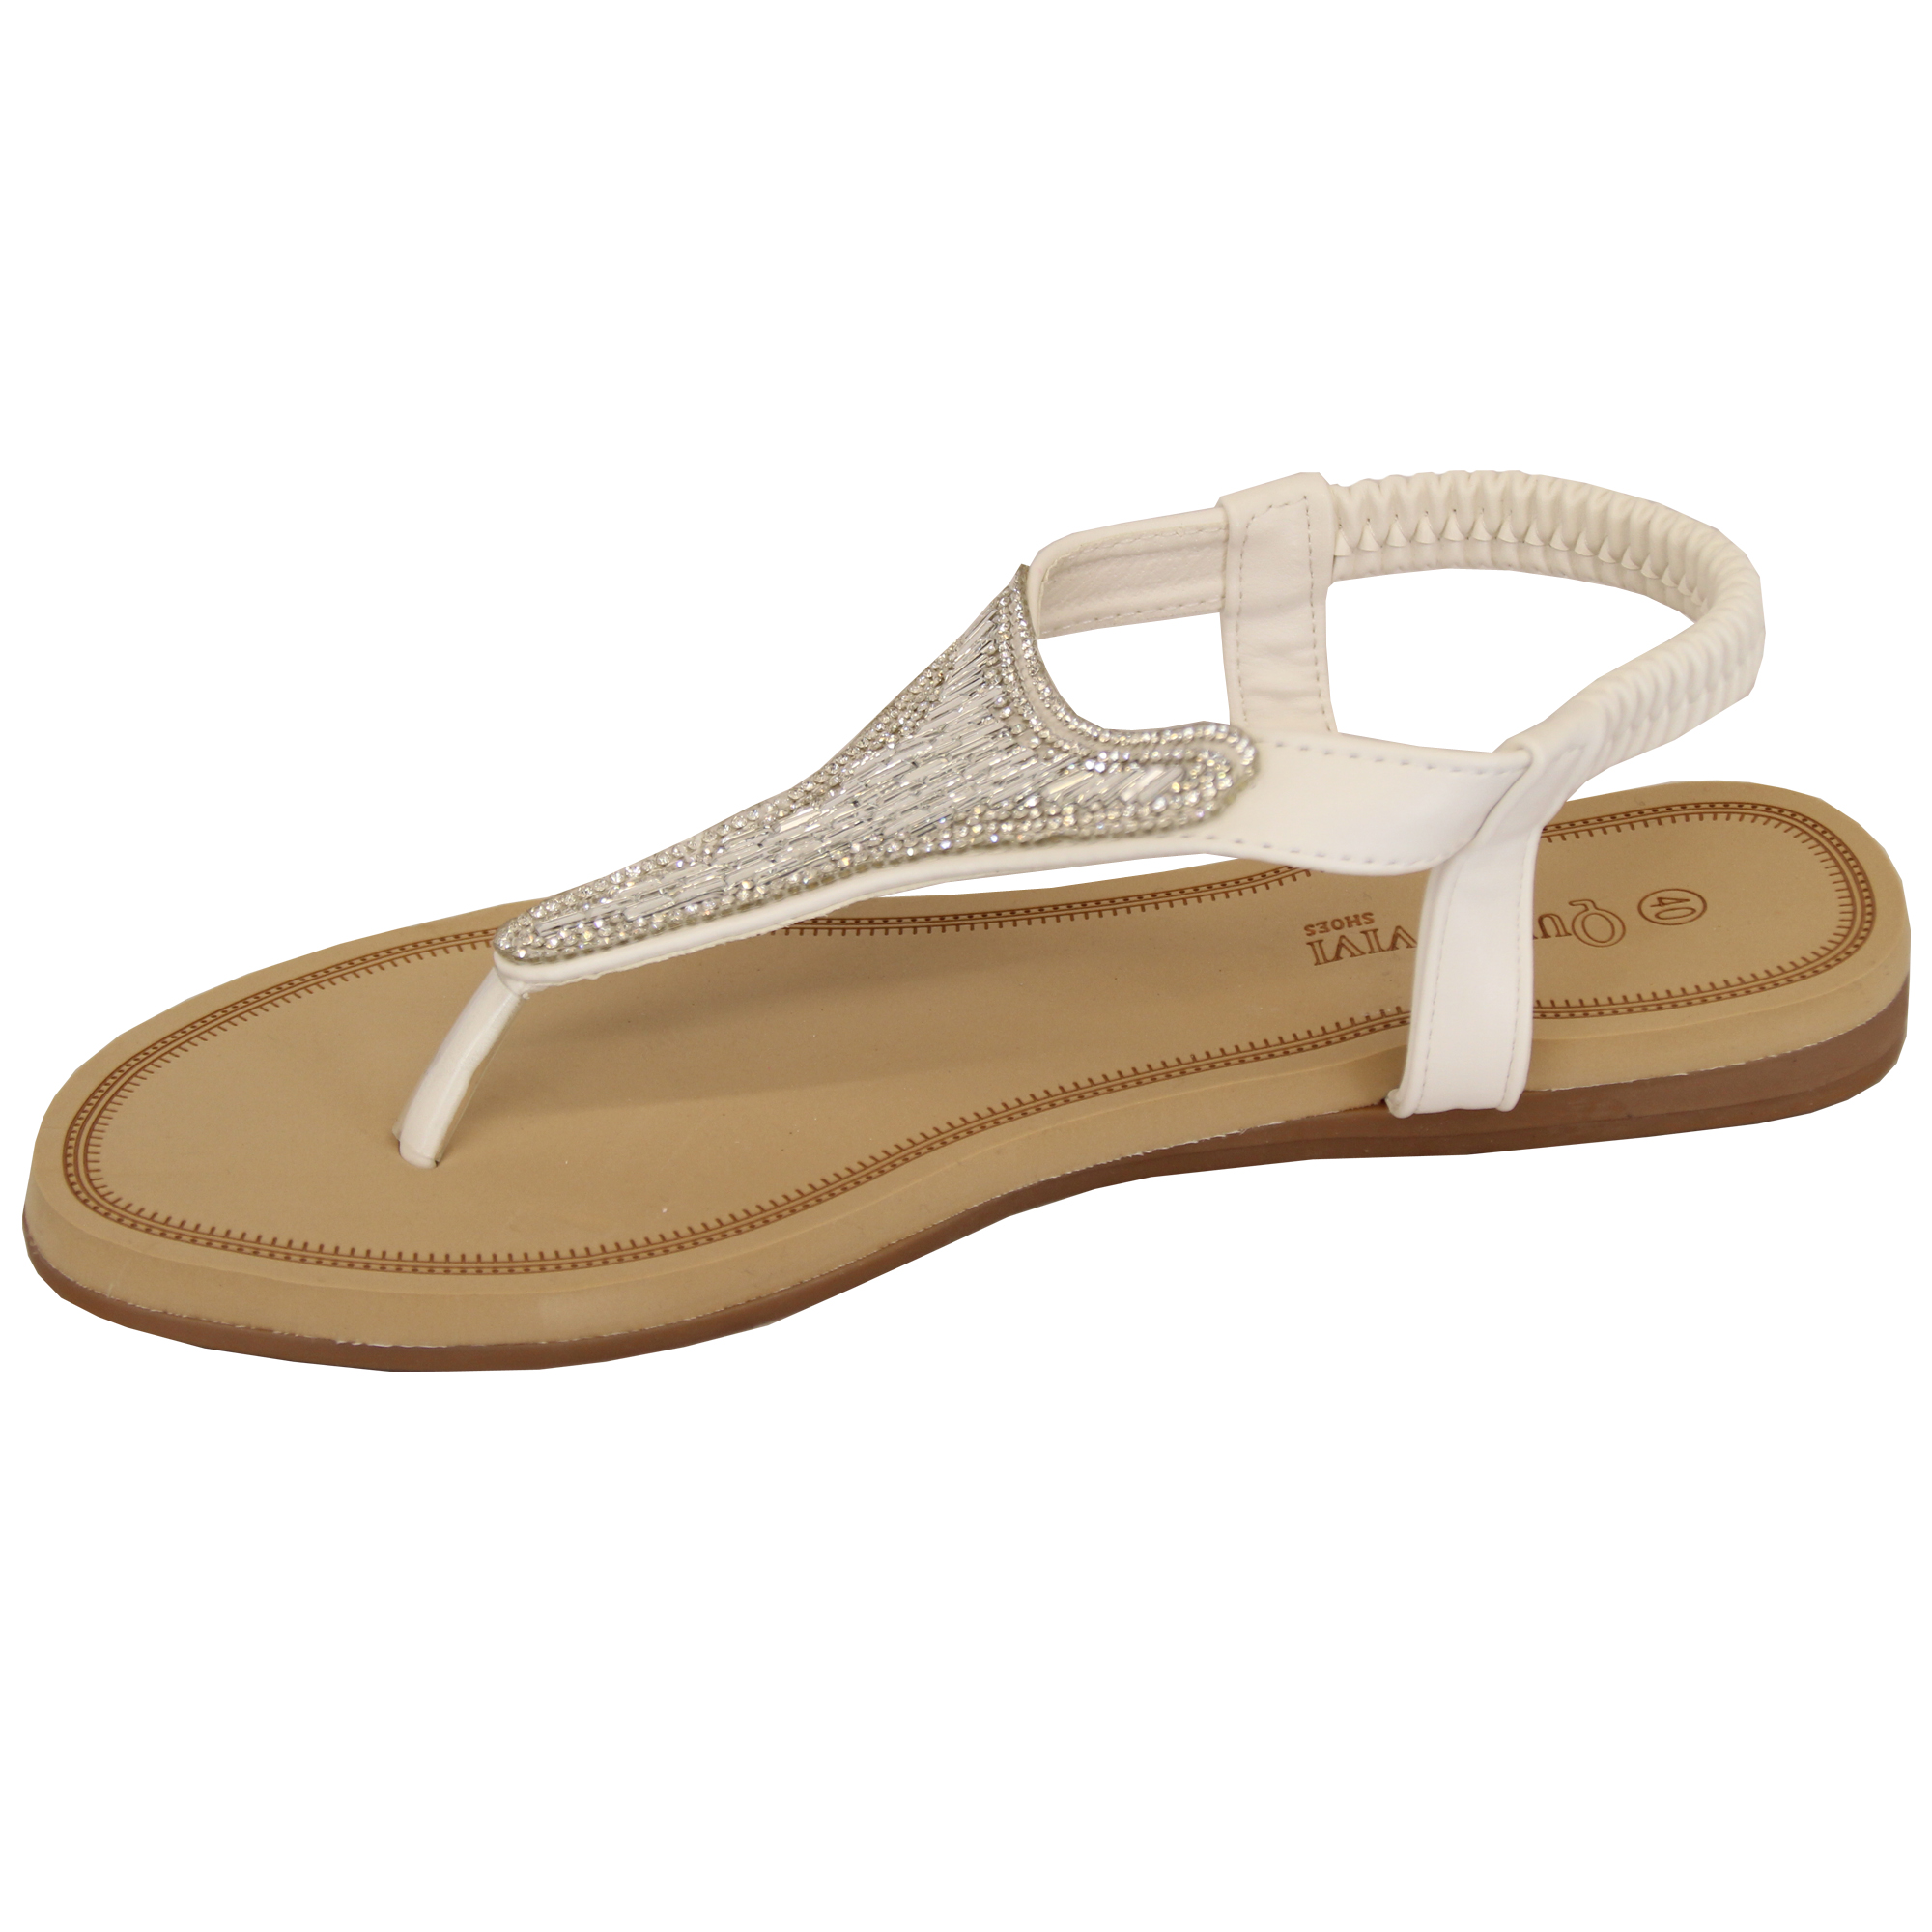 Ladies-Diamante-Sandals-Womens-Slip-On-Toe-Post-Shoes-Party-Wedding-Fashion-New thumbnail 9